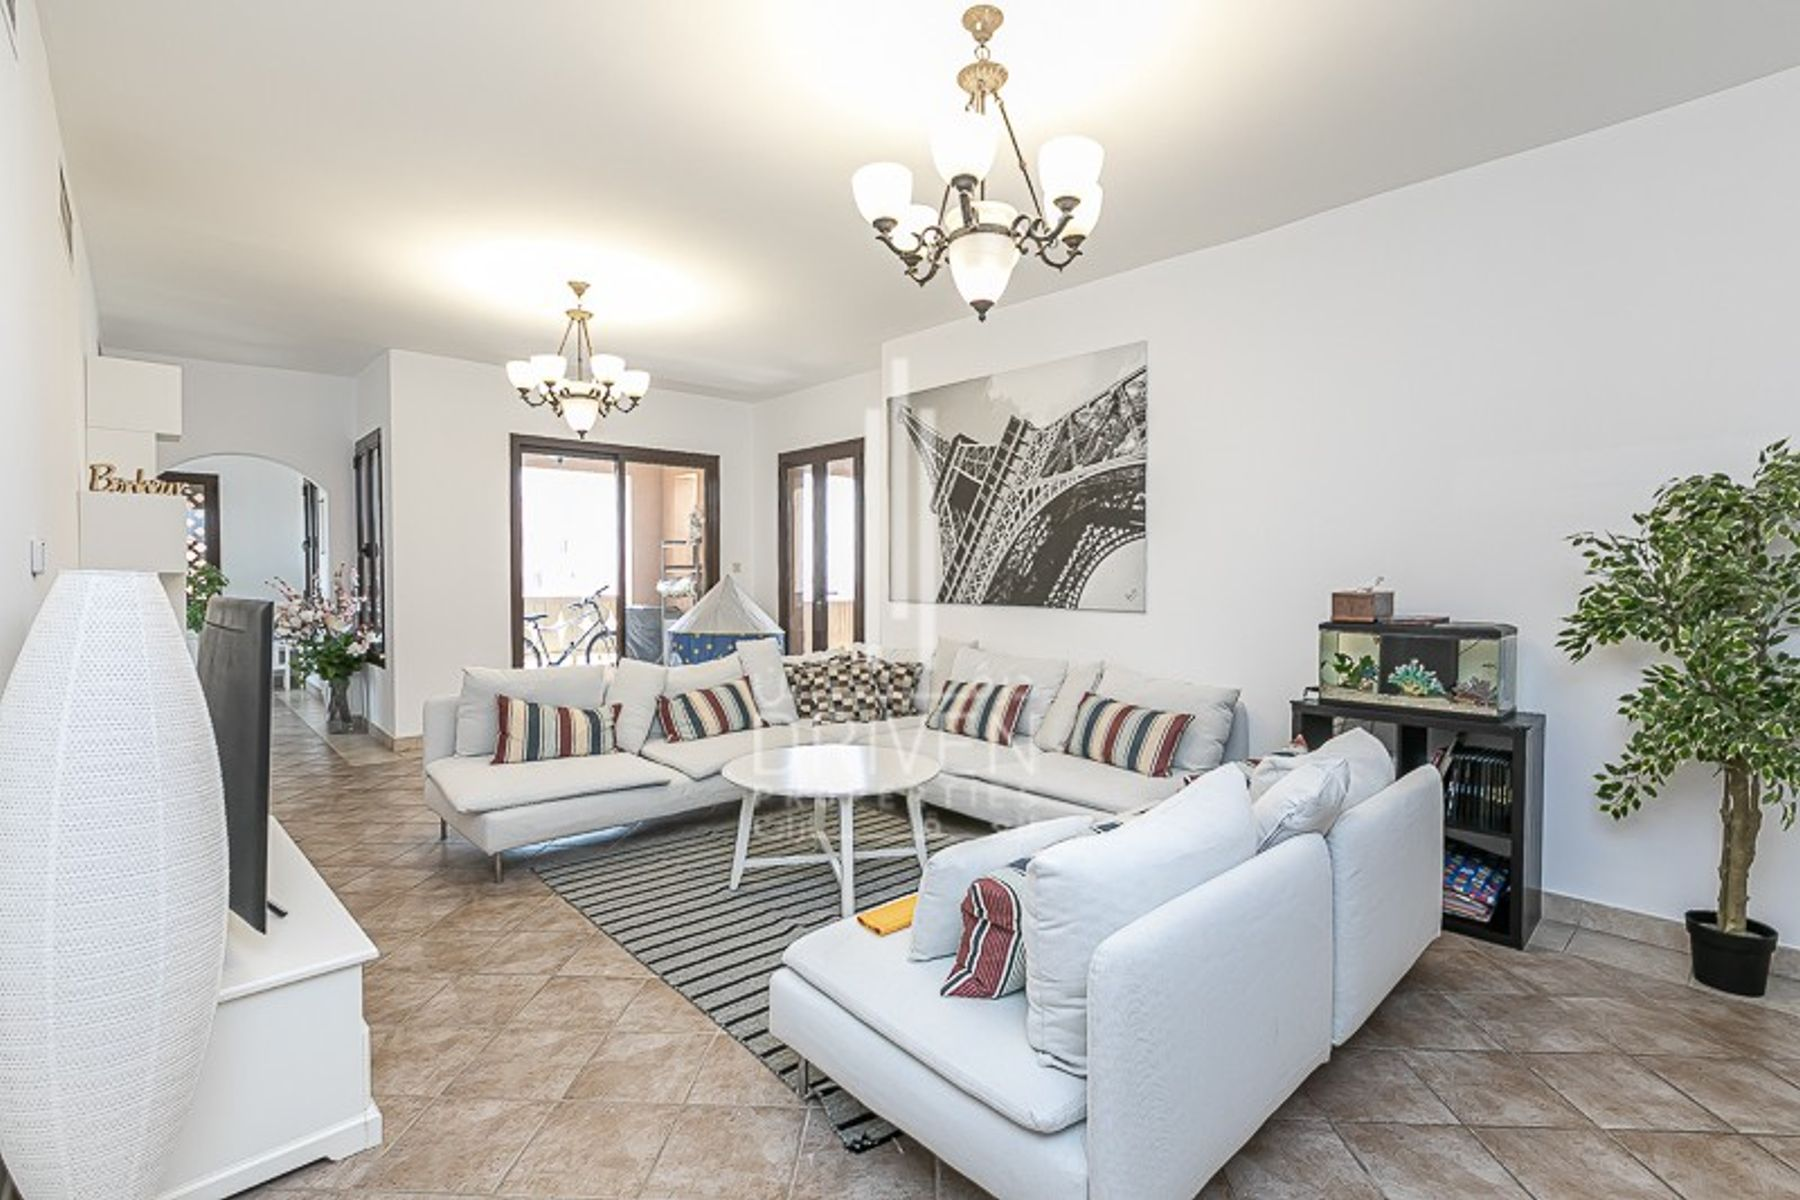 Large 2 bedrooms apartment for sale